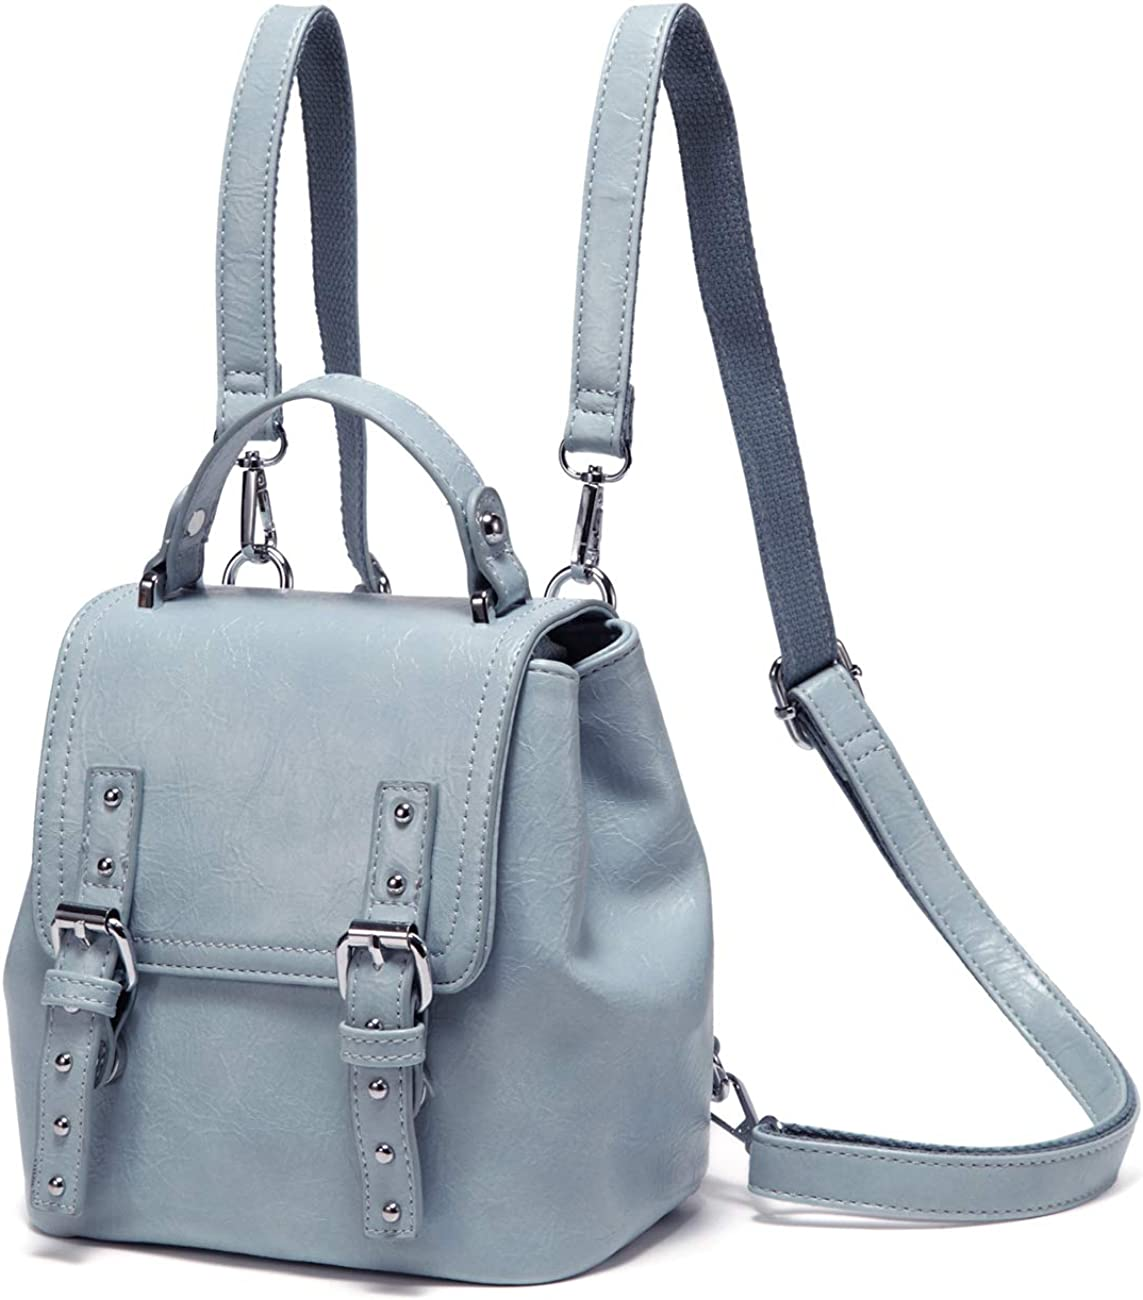 MiniBackpack Purse,VASCHY 3 Ways to Carry Cute Small Backpack for Women and Girls with Detachable Straps